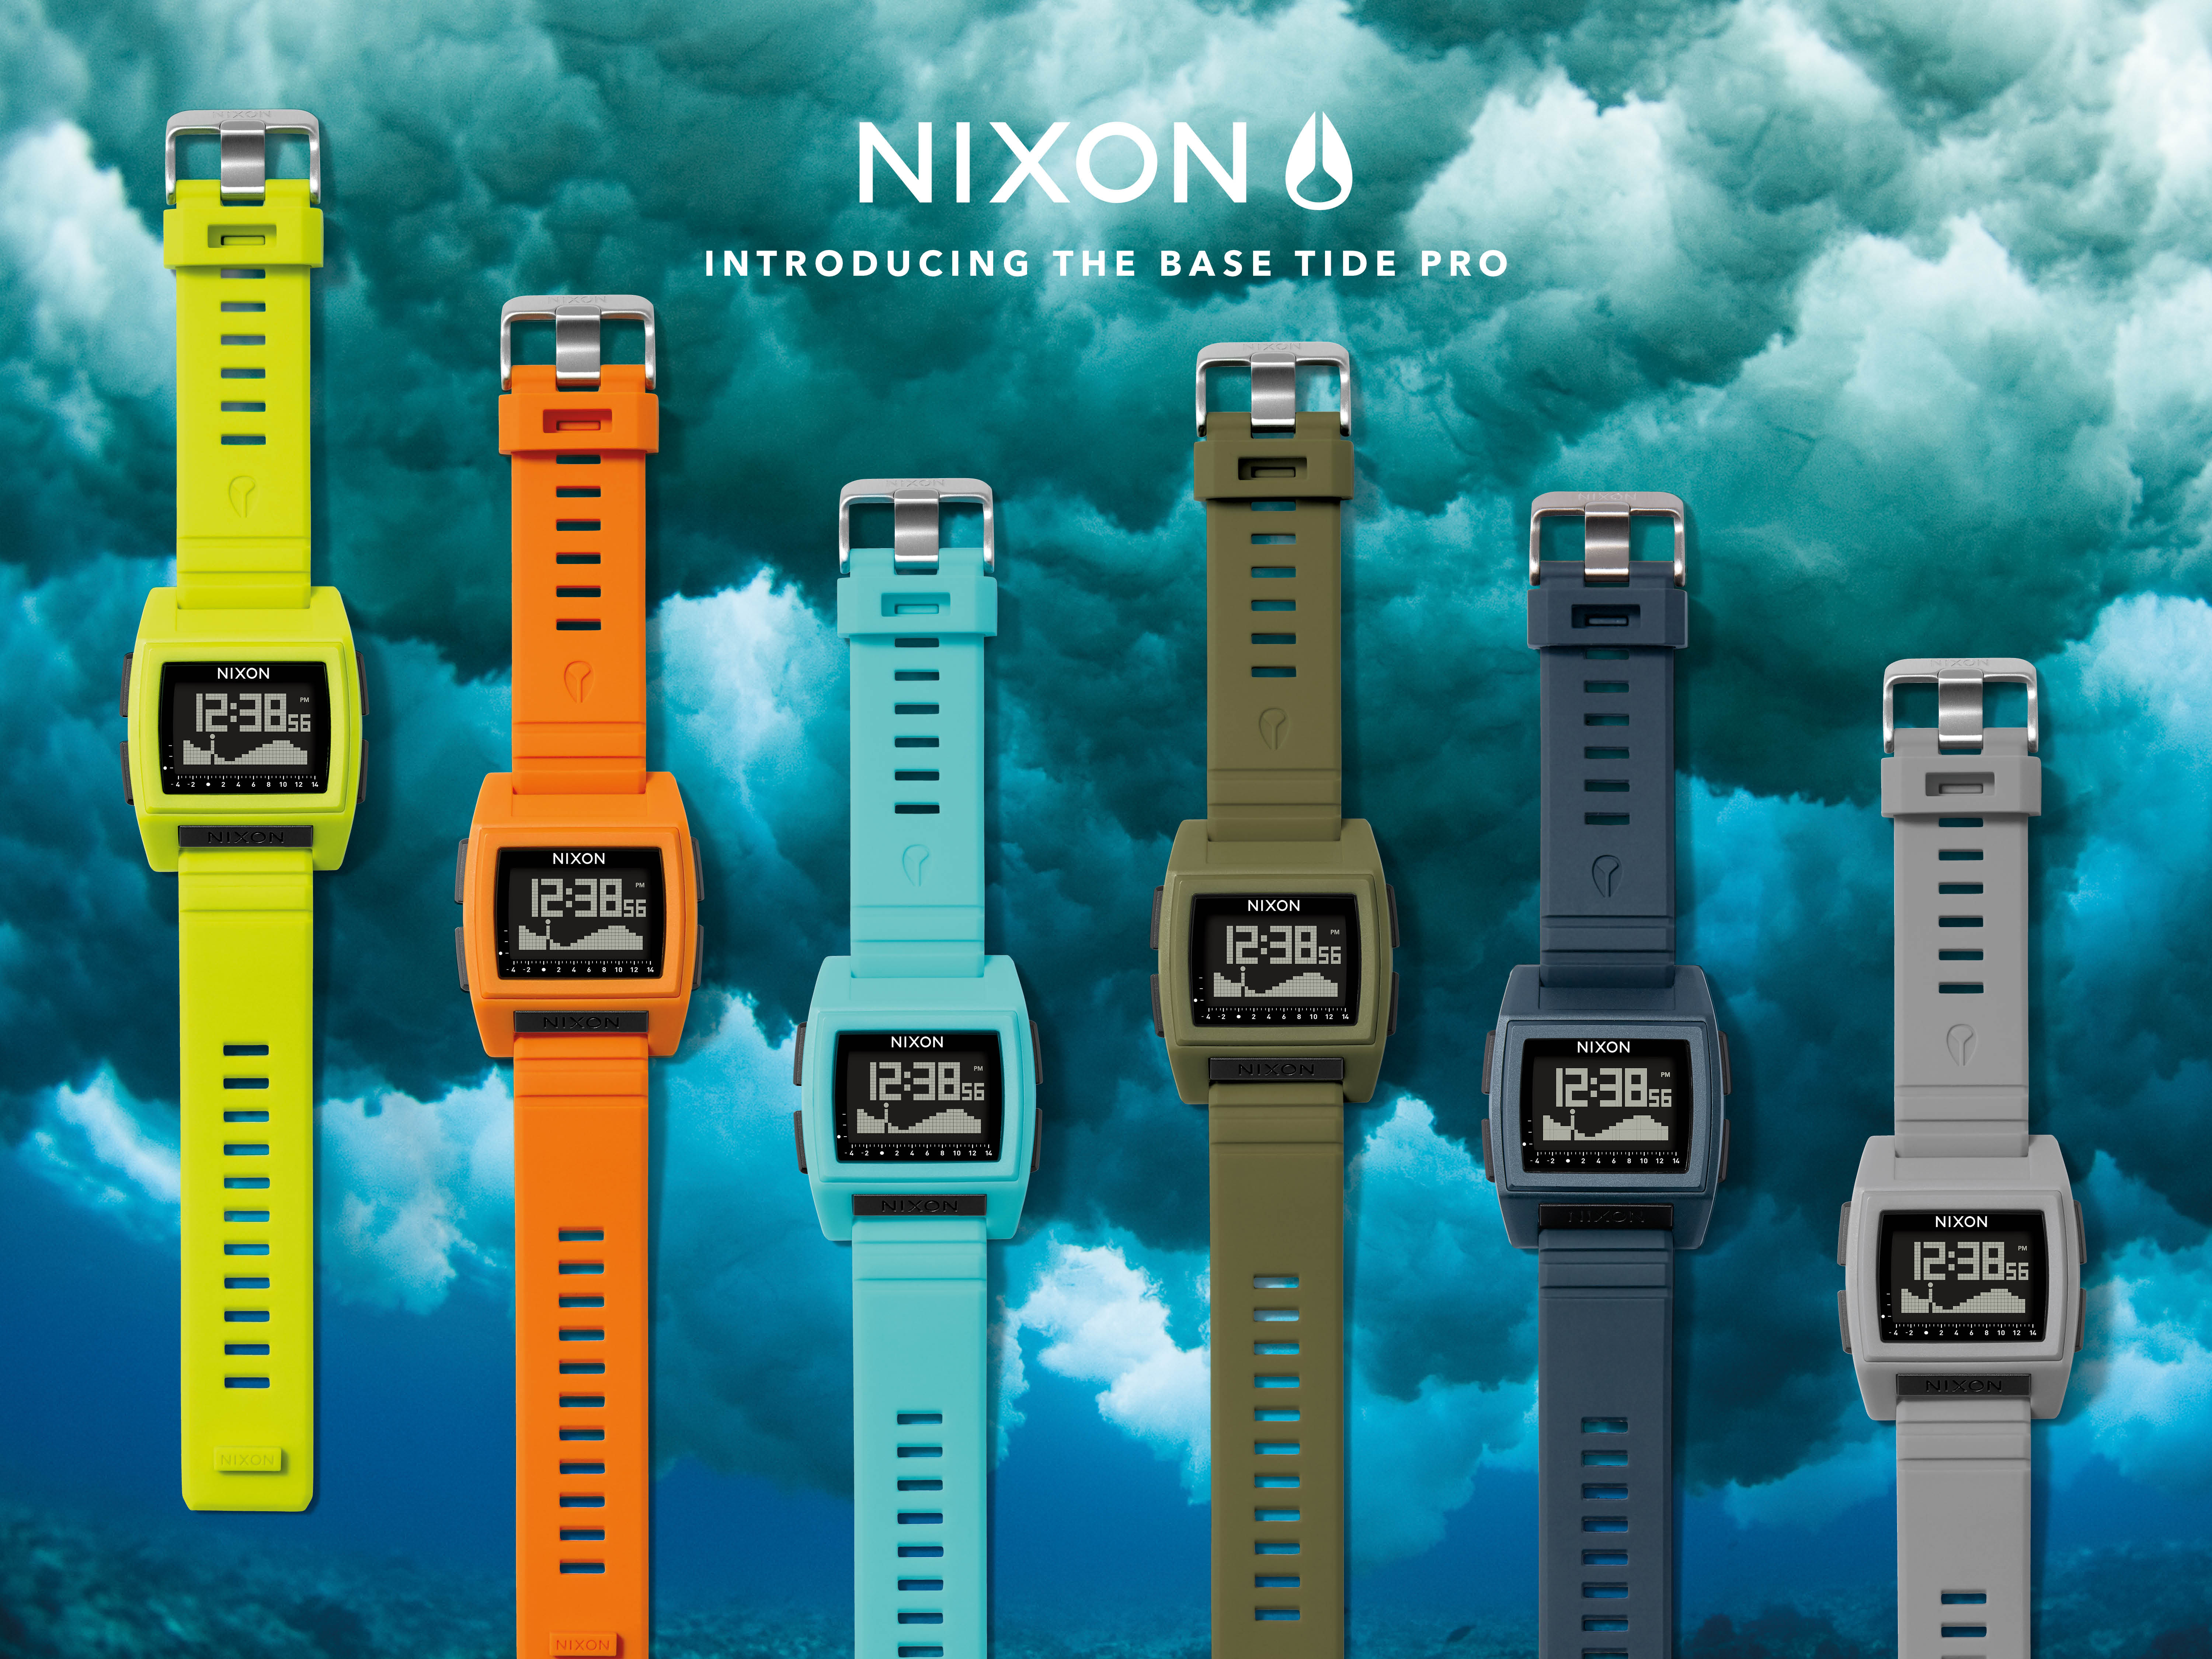 nixon s base tide pro will be available for purchase at premiere surf shops globally